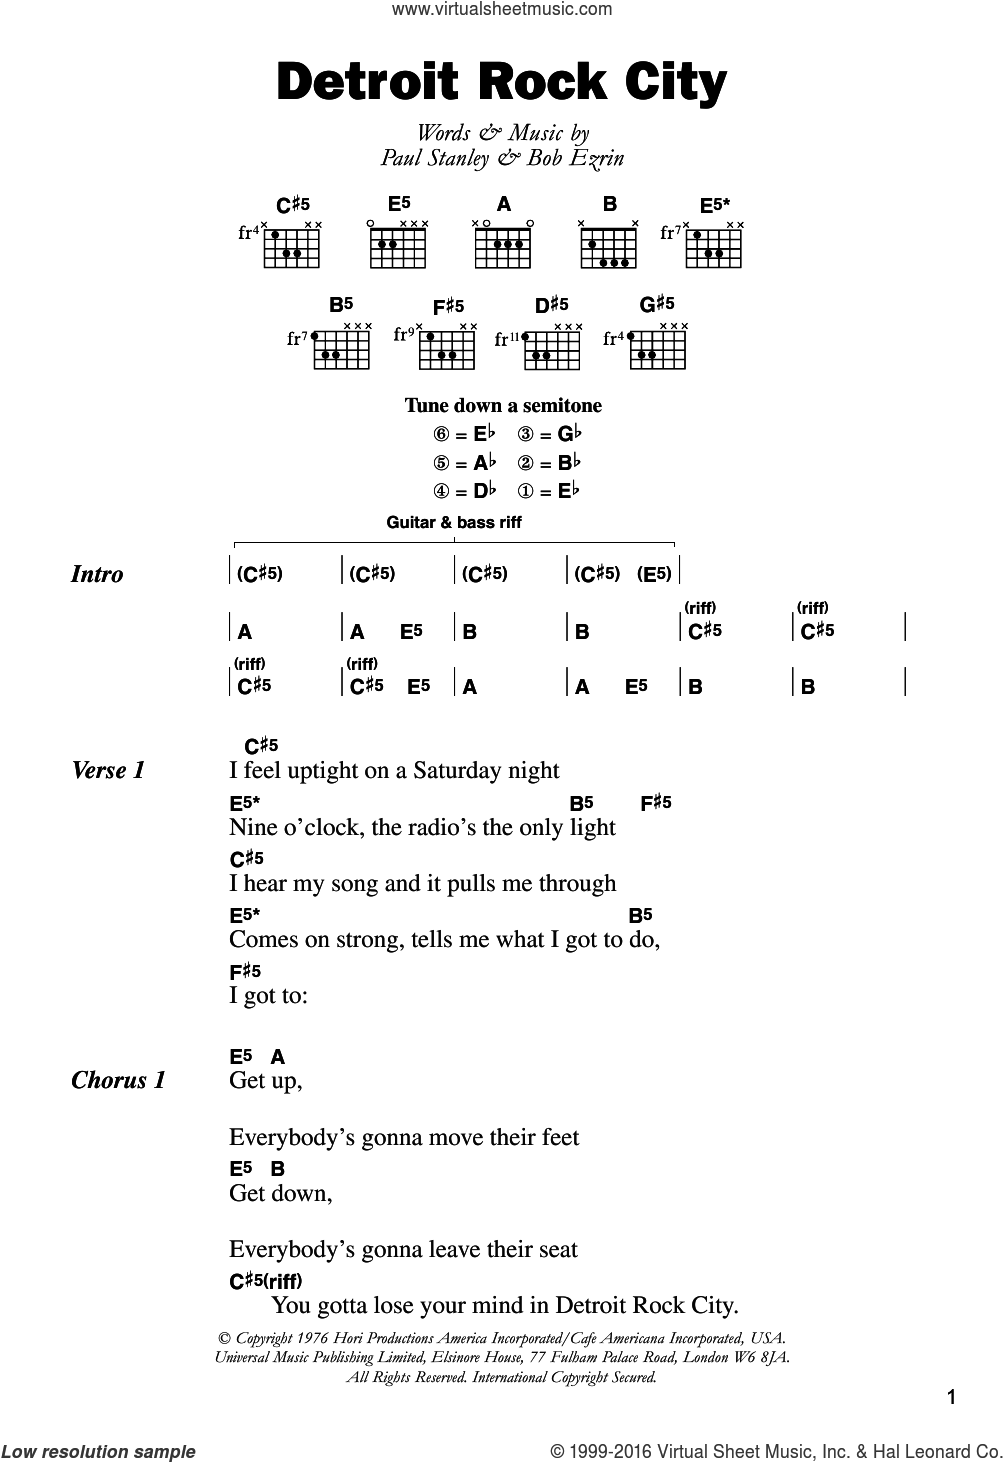 Detroit Rock City sheet music for guitar (chords) by KISS, Bob Ezrin and Paul Stanley, intermediate skill level